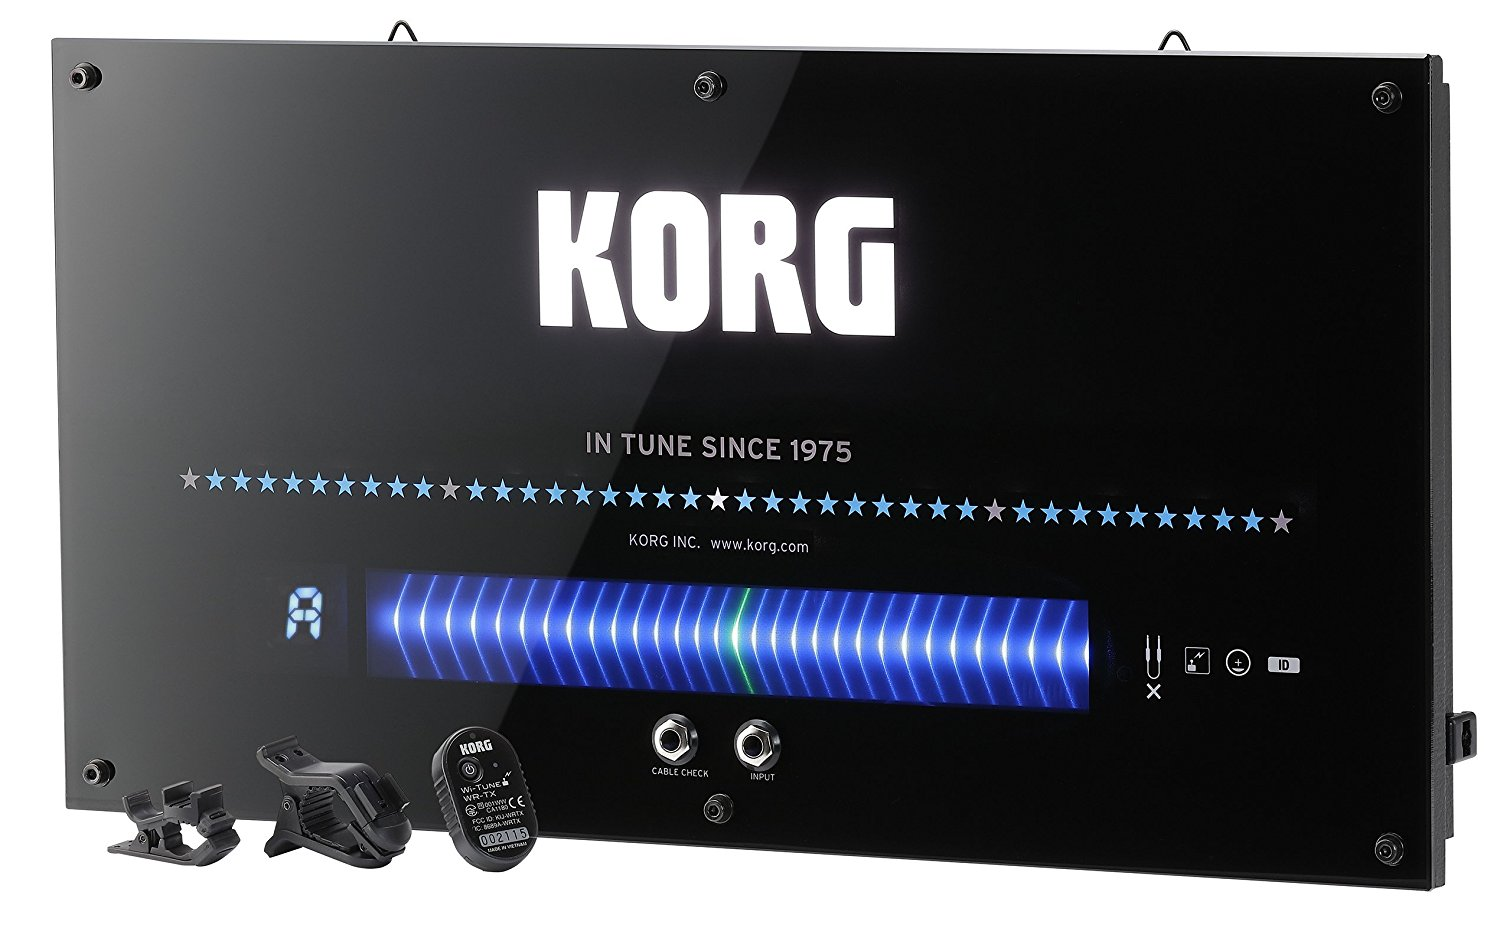 Korg WDT-1 Wall Mount Display Guitar Tuner, Ideal for the wall of a teaching studio, rehearsal space or music store недорго, оригинальная цена